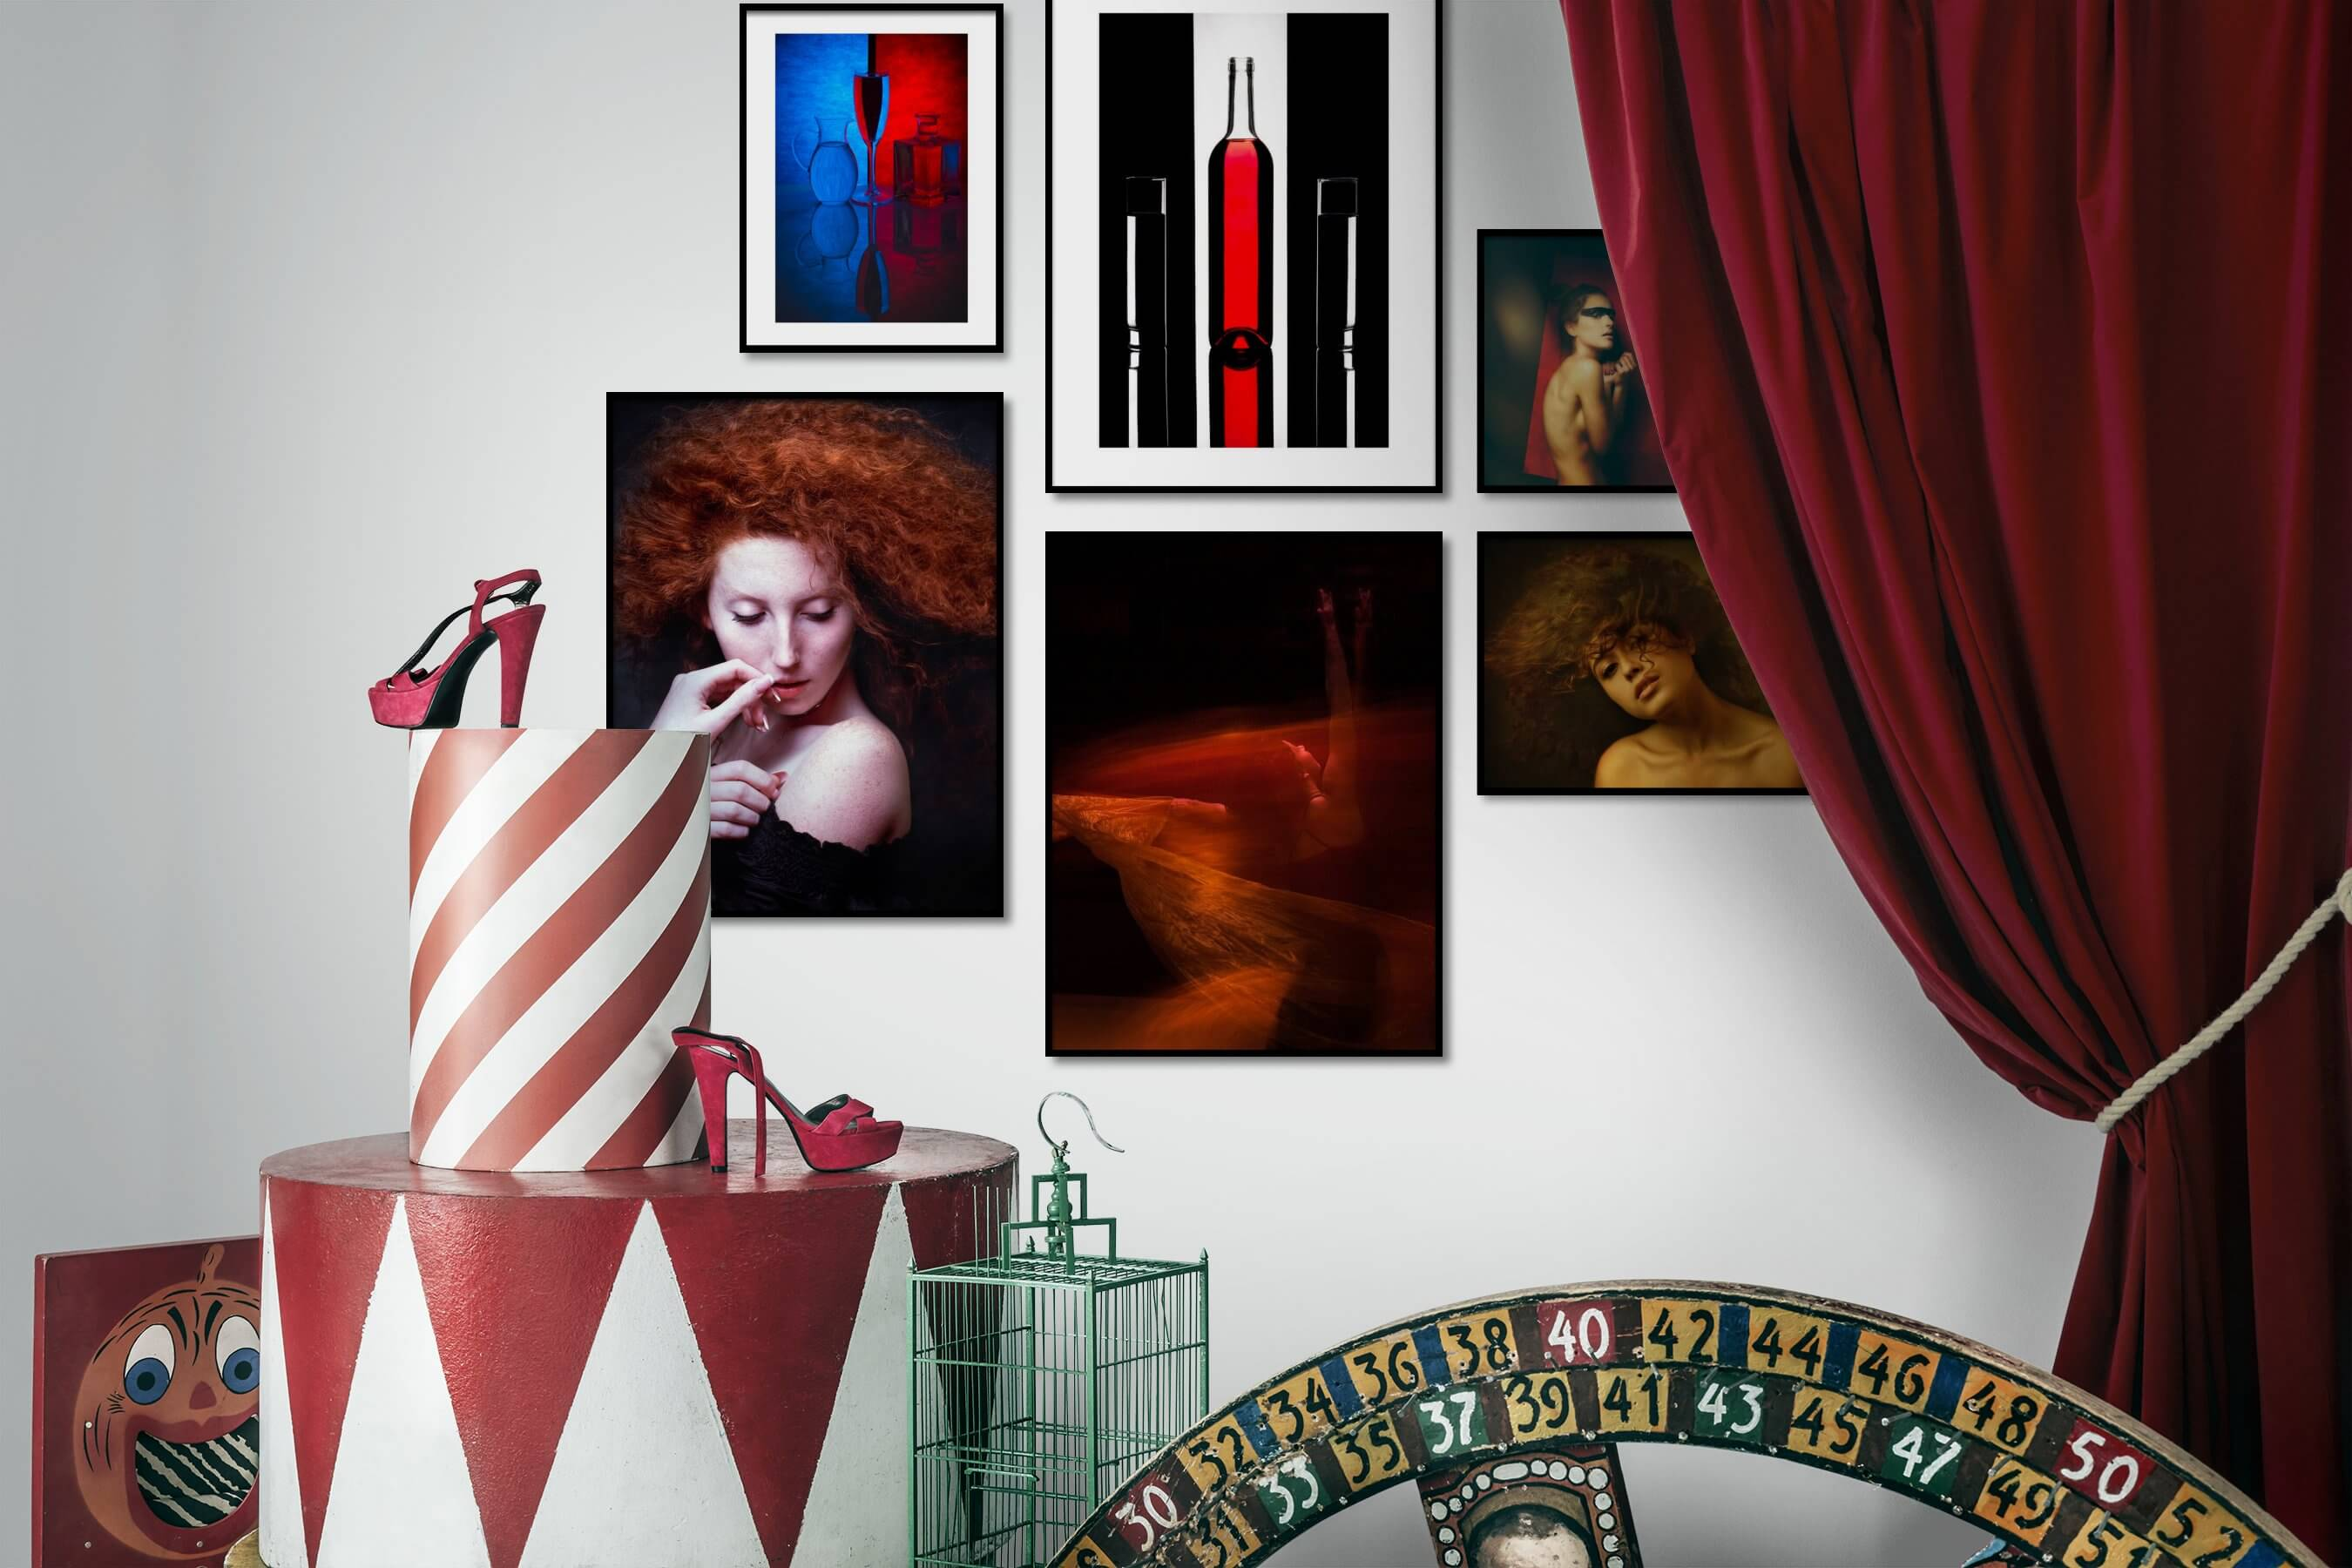 Gallery wall idea with six framed pictures arranged on a wall depicting Colorful, For the Maximalist, Fashion & Beauty, Dark Tones, and For the Moderate